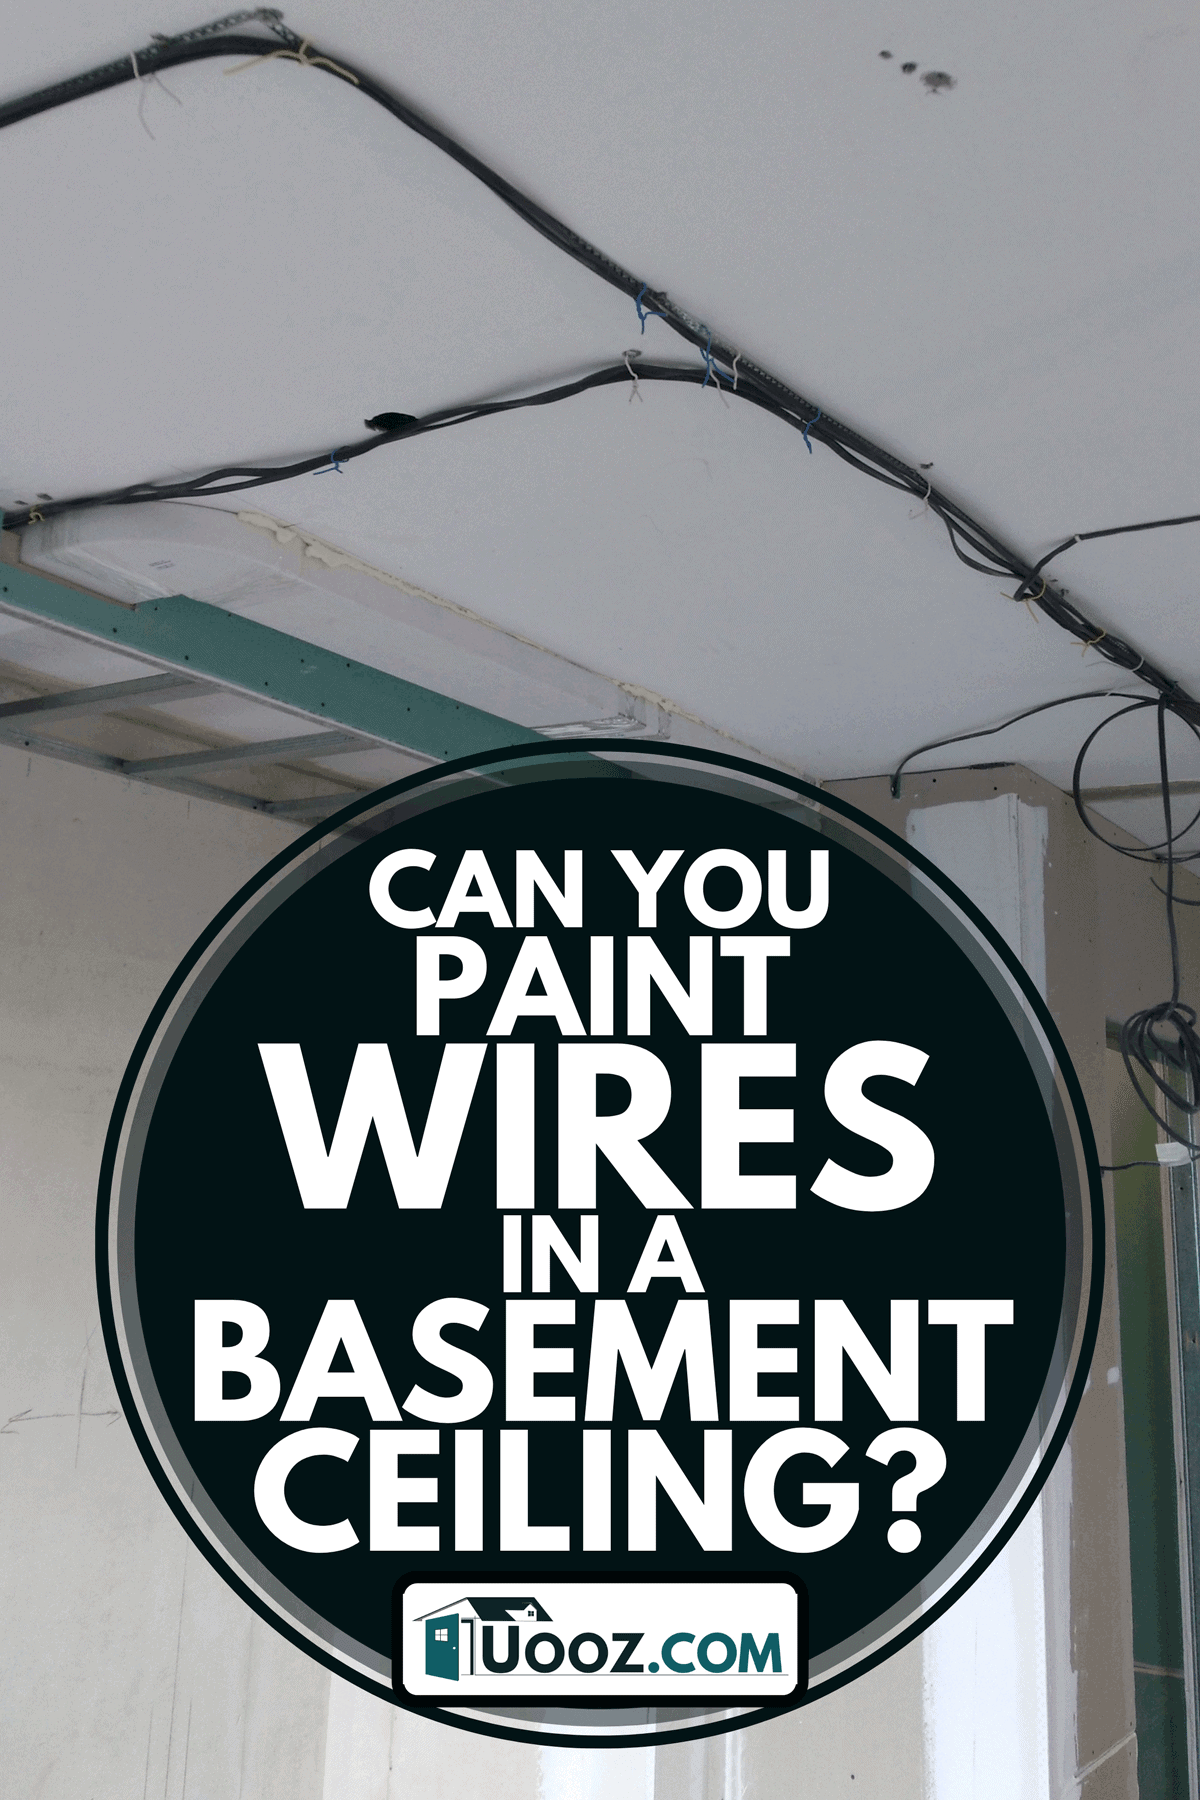 A basement ceiling with wires, Can You Paint Wires In A Basement Ceiling?